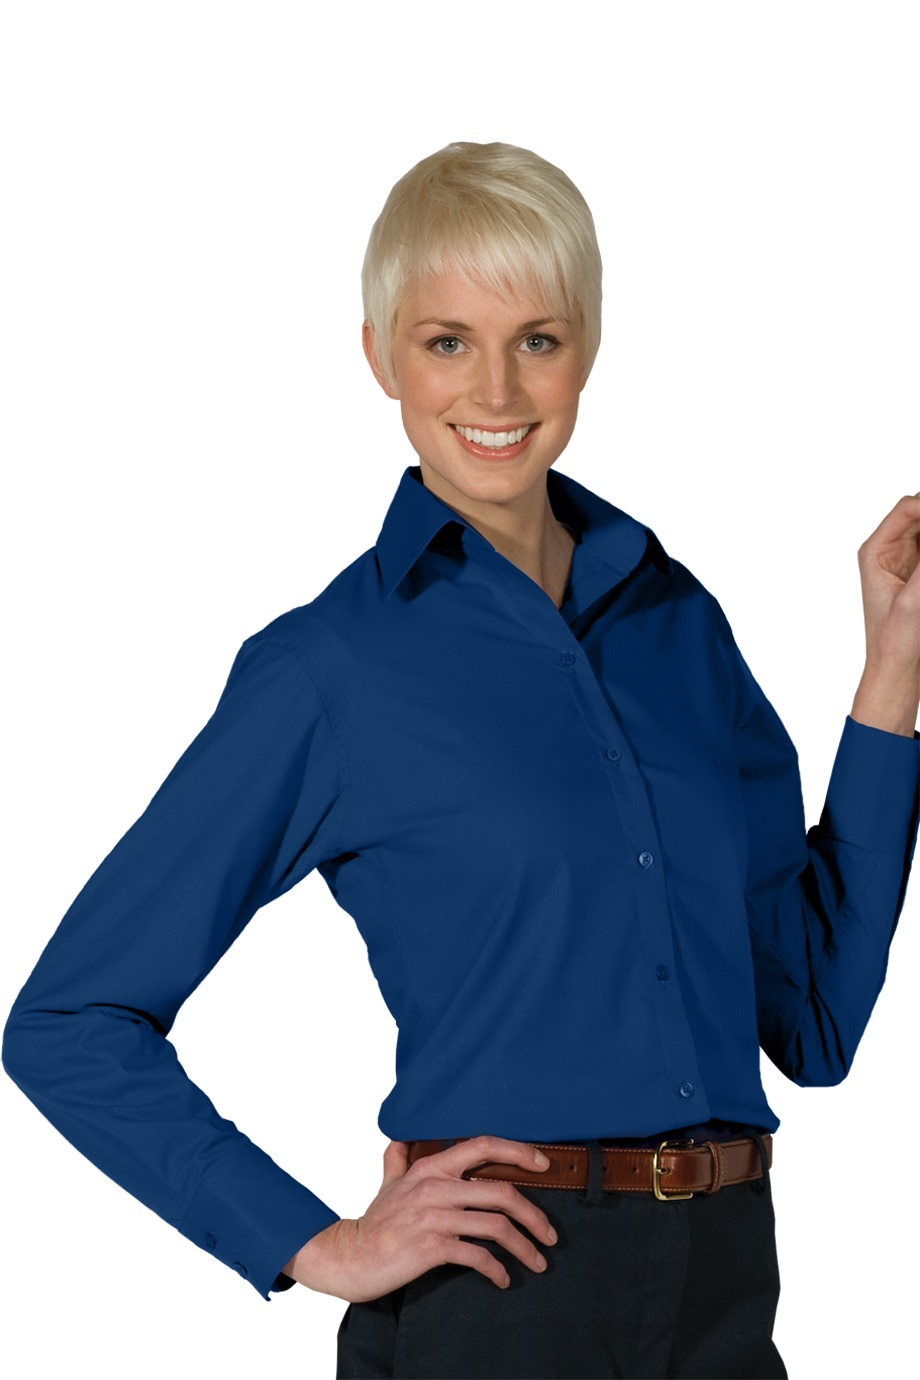 LHE5295-FKEY- Ladies V-Neck Button Up Poplin Long Sleeve Shirt with Notch Cuff. Sizes XXSmall-3XL